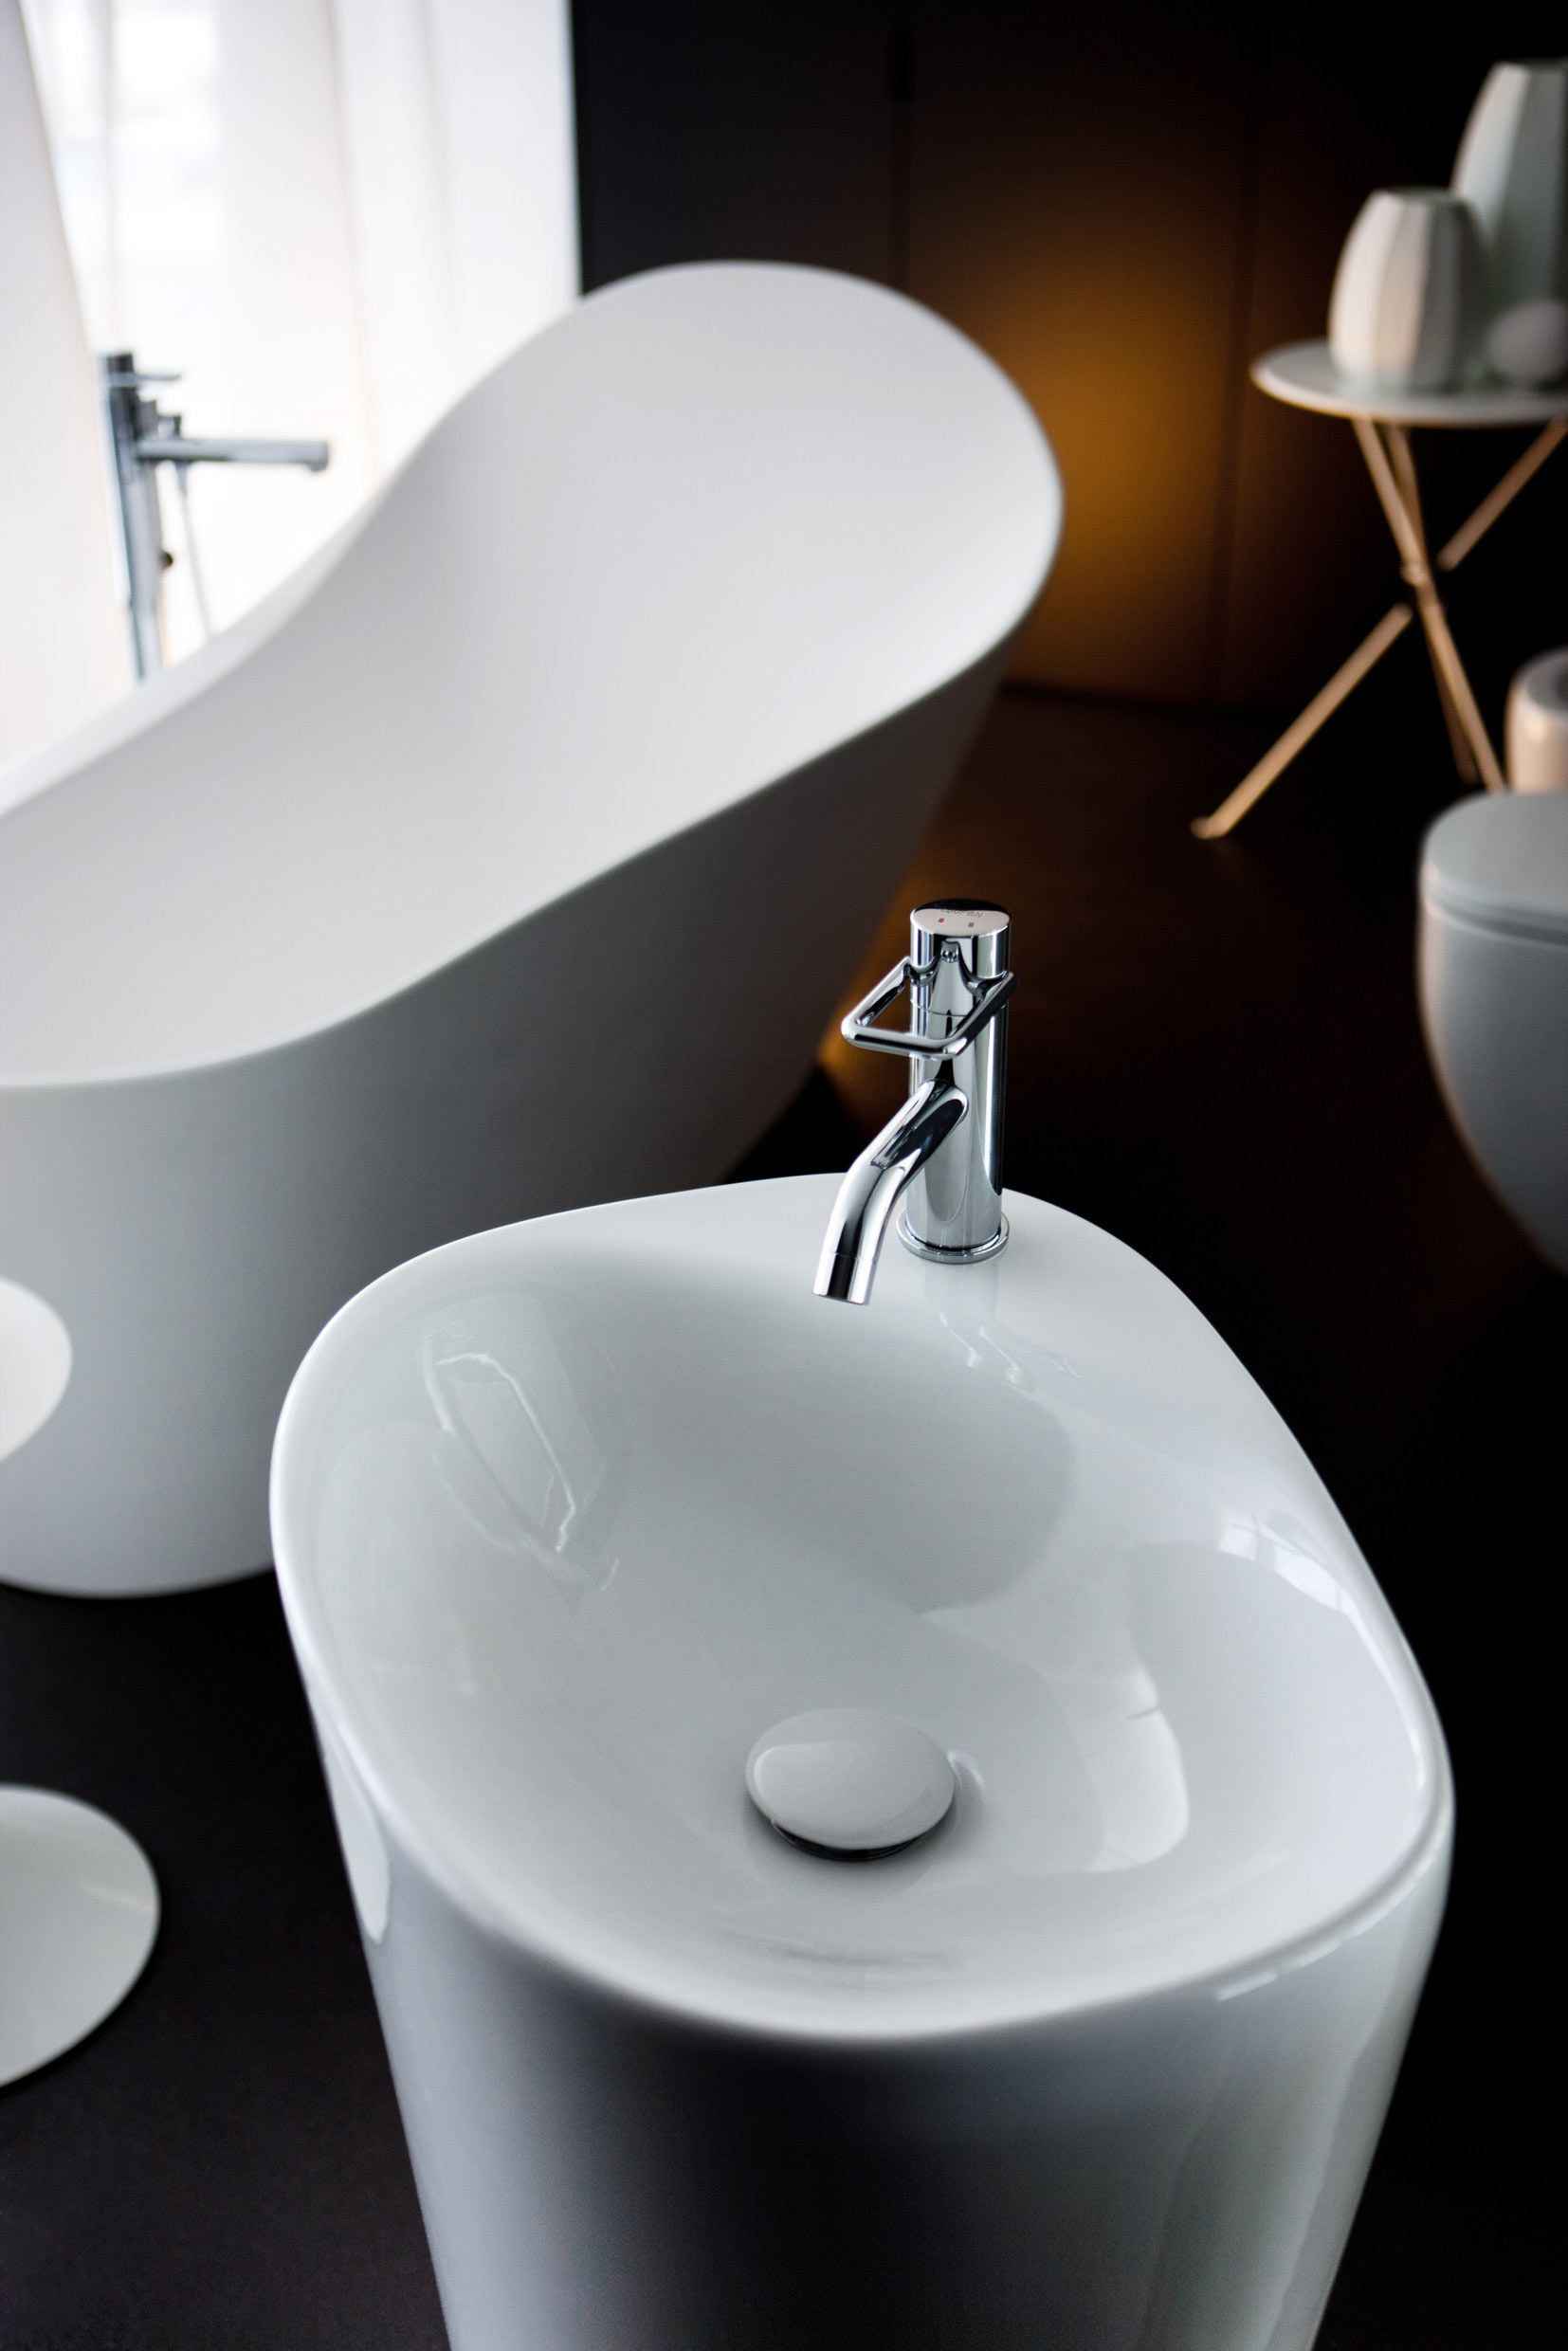 33 BATHROOM SINK IDEAS TO GET INSPIRED FROM | Ceramics, Nice and ...